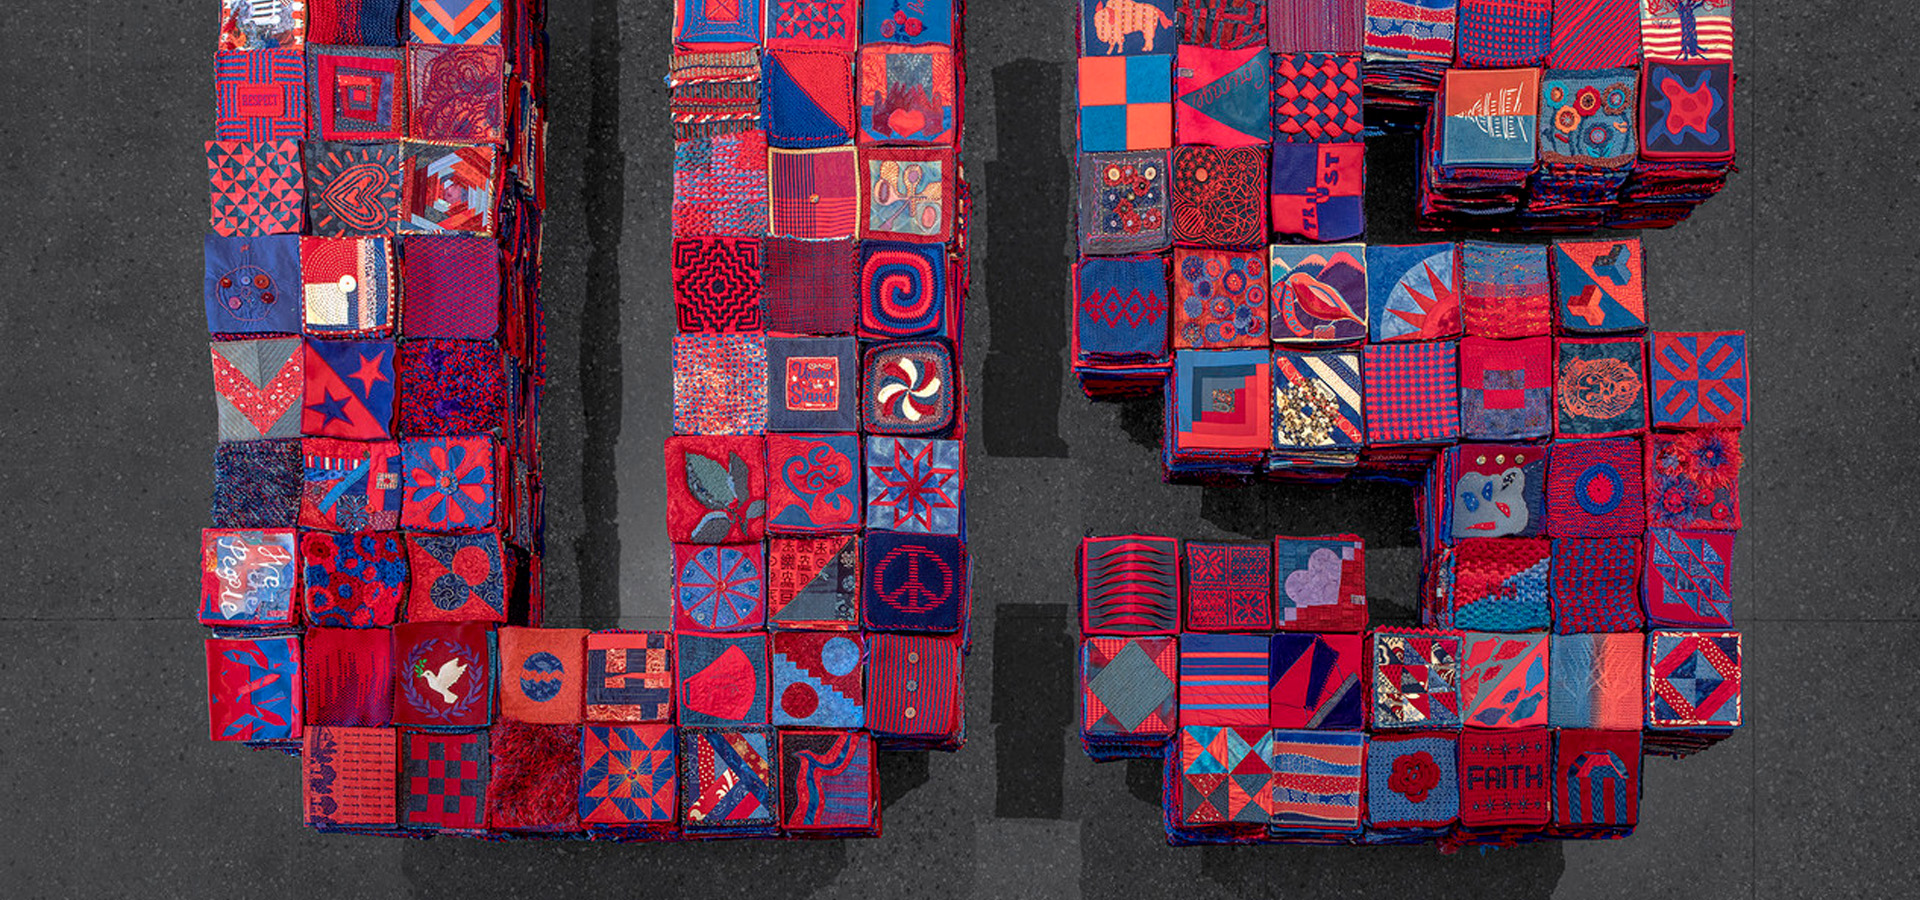 A quilted collage of squares in red, blue, and pink.